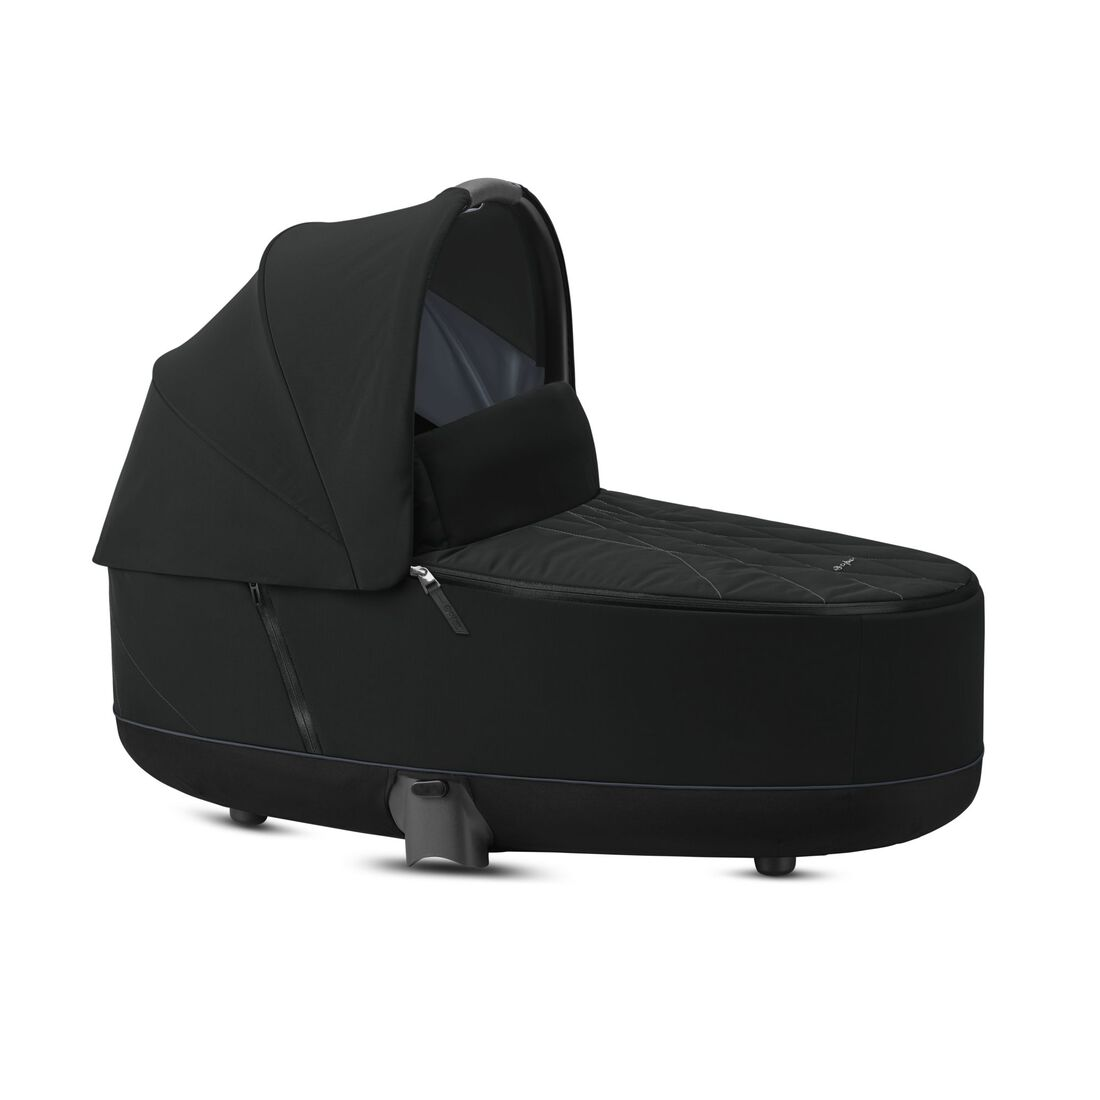 CYBEX Priam Lux Carry Cot - Deep Black in Deep Black large